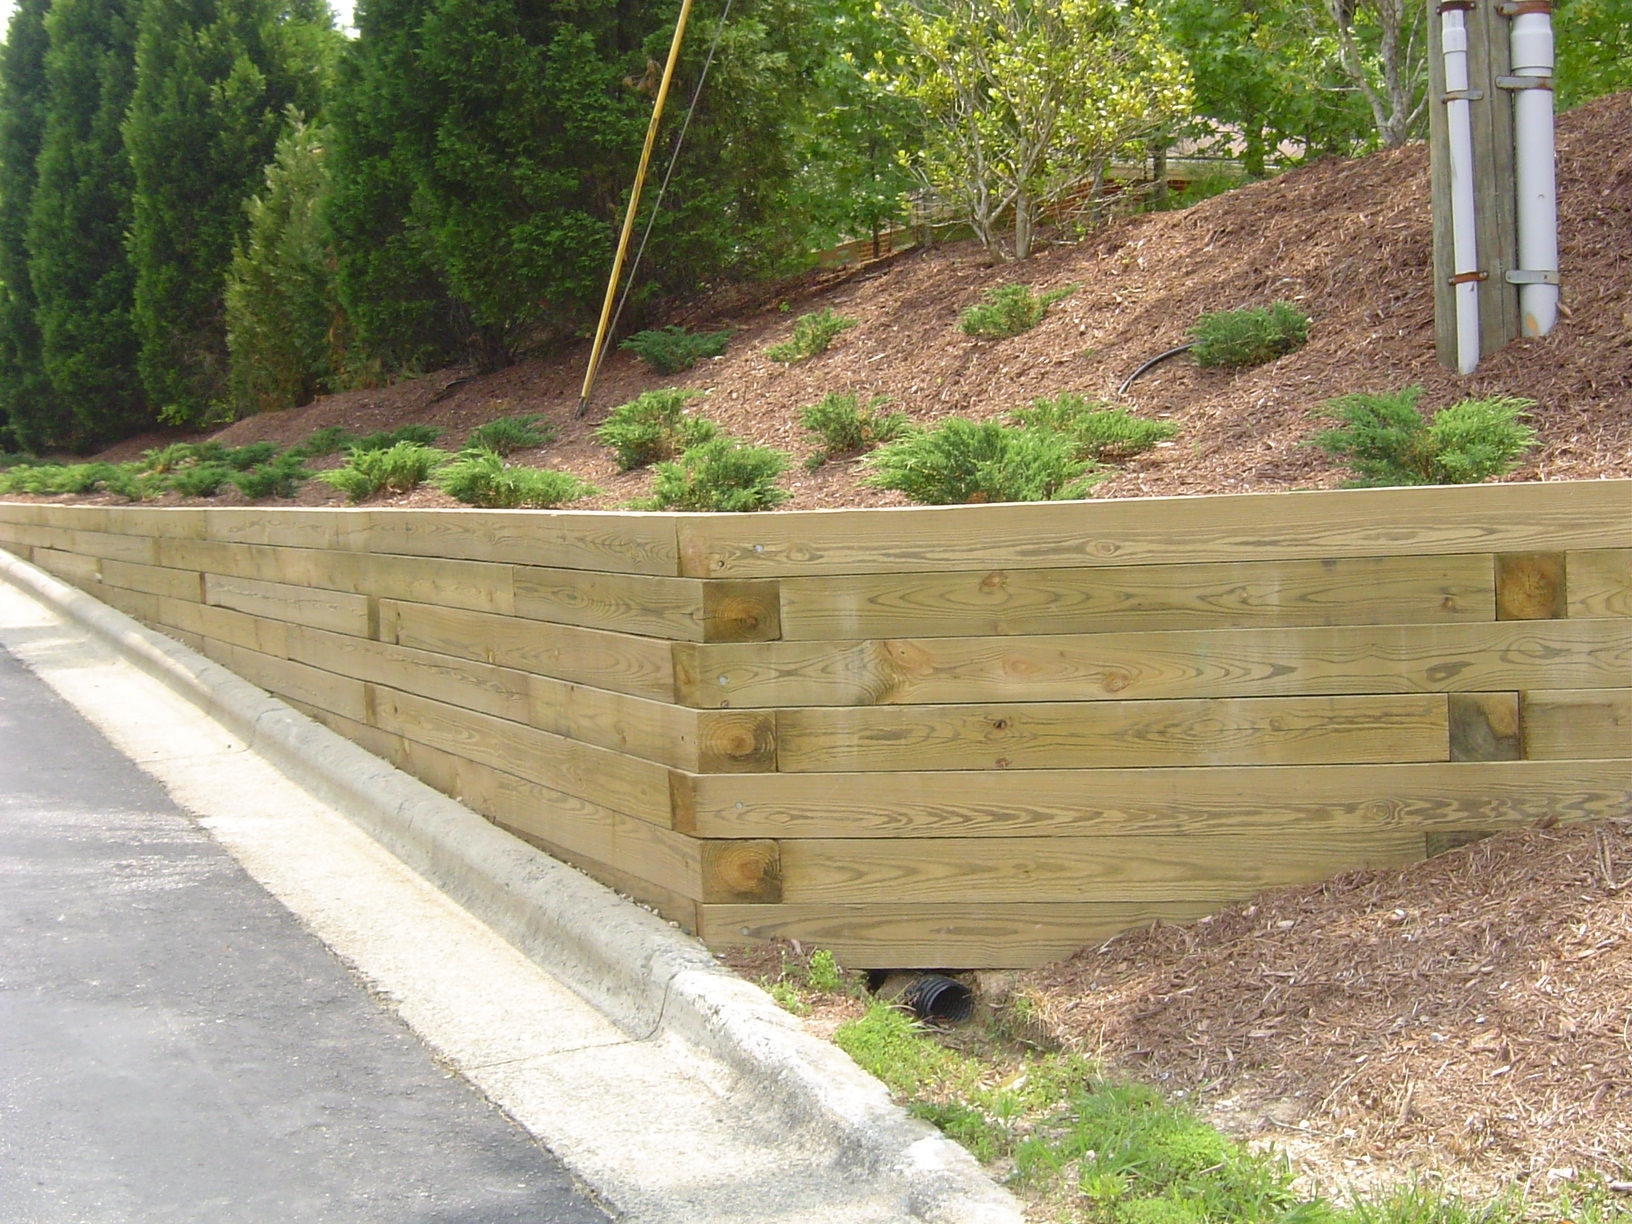 Image of: Timber Angle Retaining Wall Applications Of Retaining Wall For Landscaping Logs Landscaping Logs Beautiful In The Garden